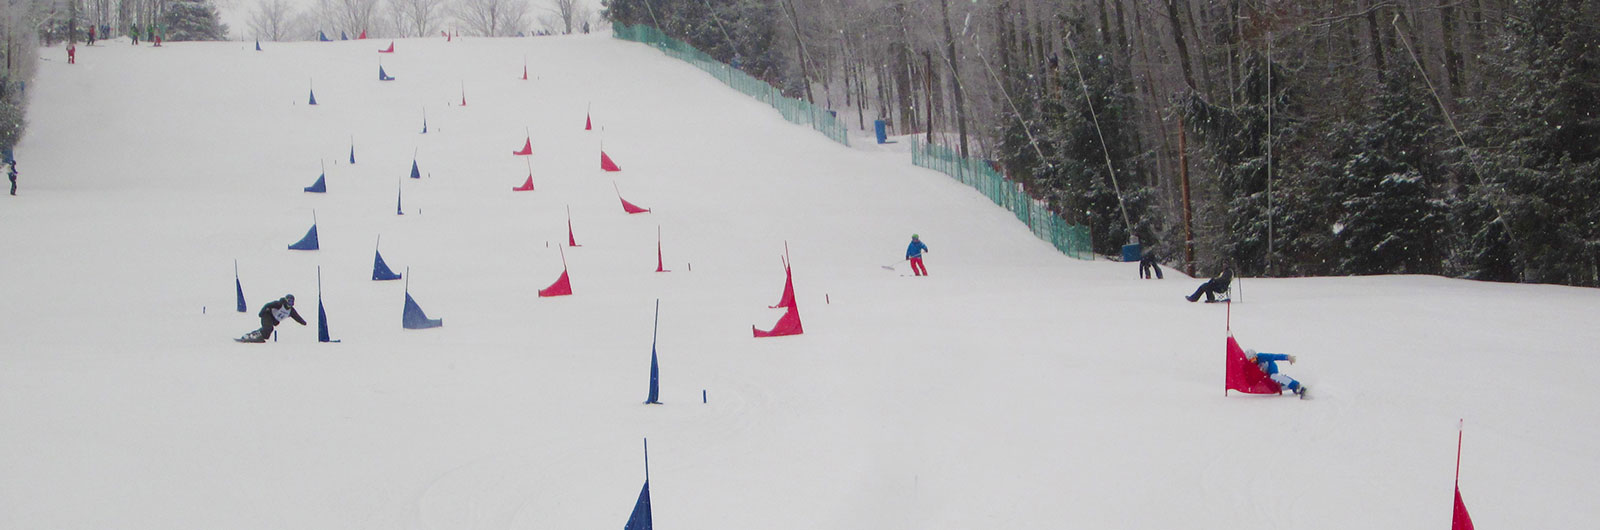 NorAm Parallel Slalom Race